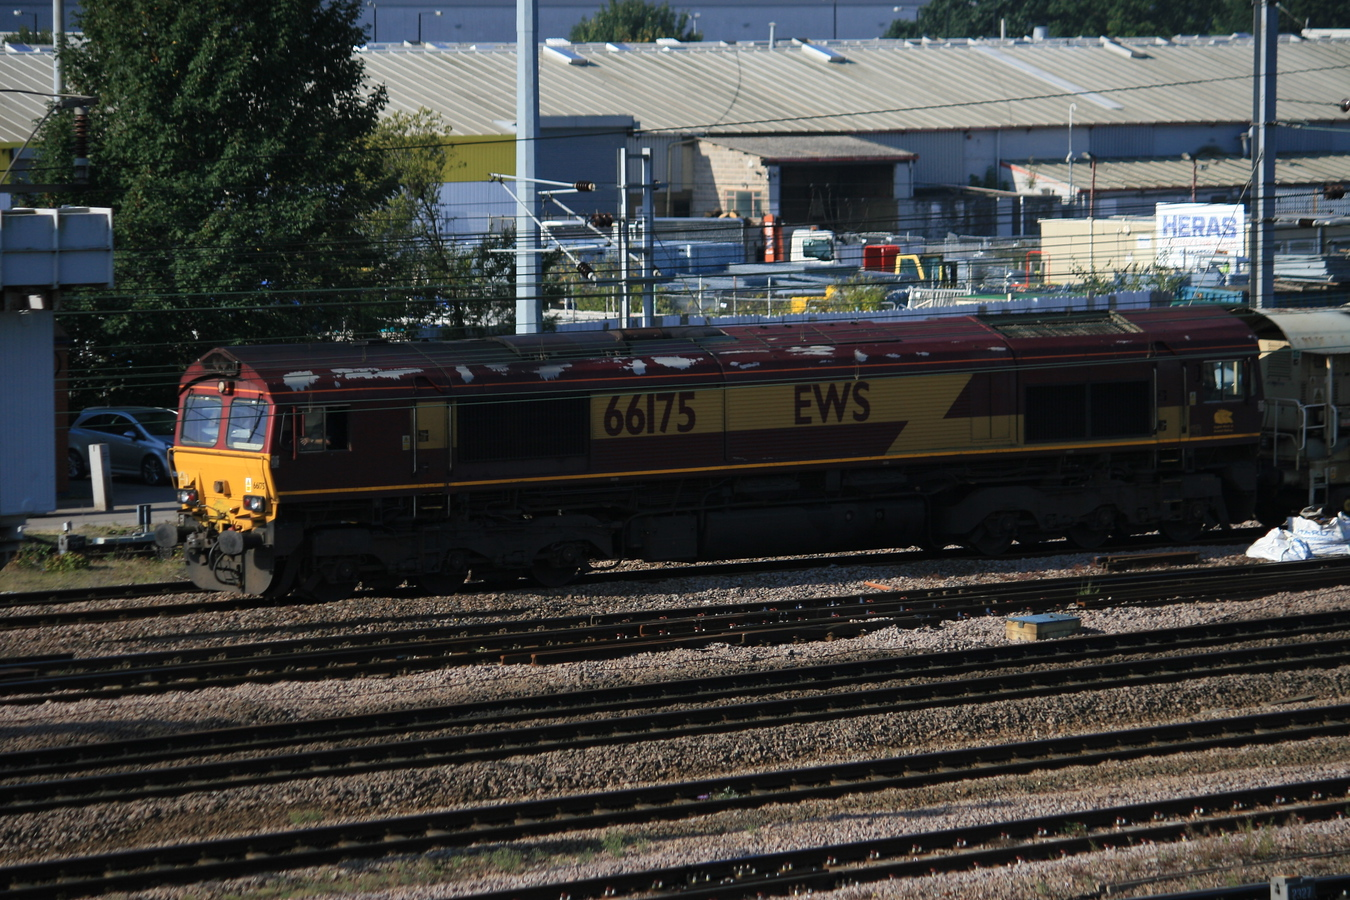 66175_Doncaster_20092015 (58)_DBS